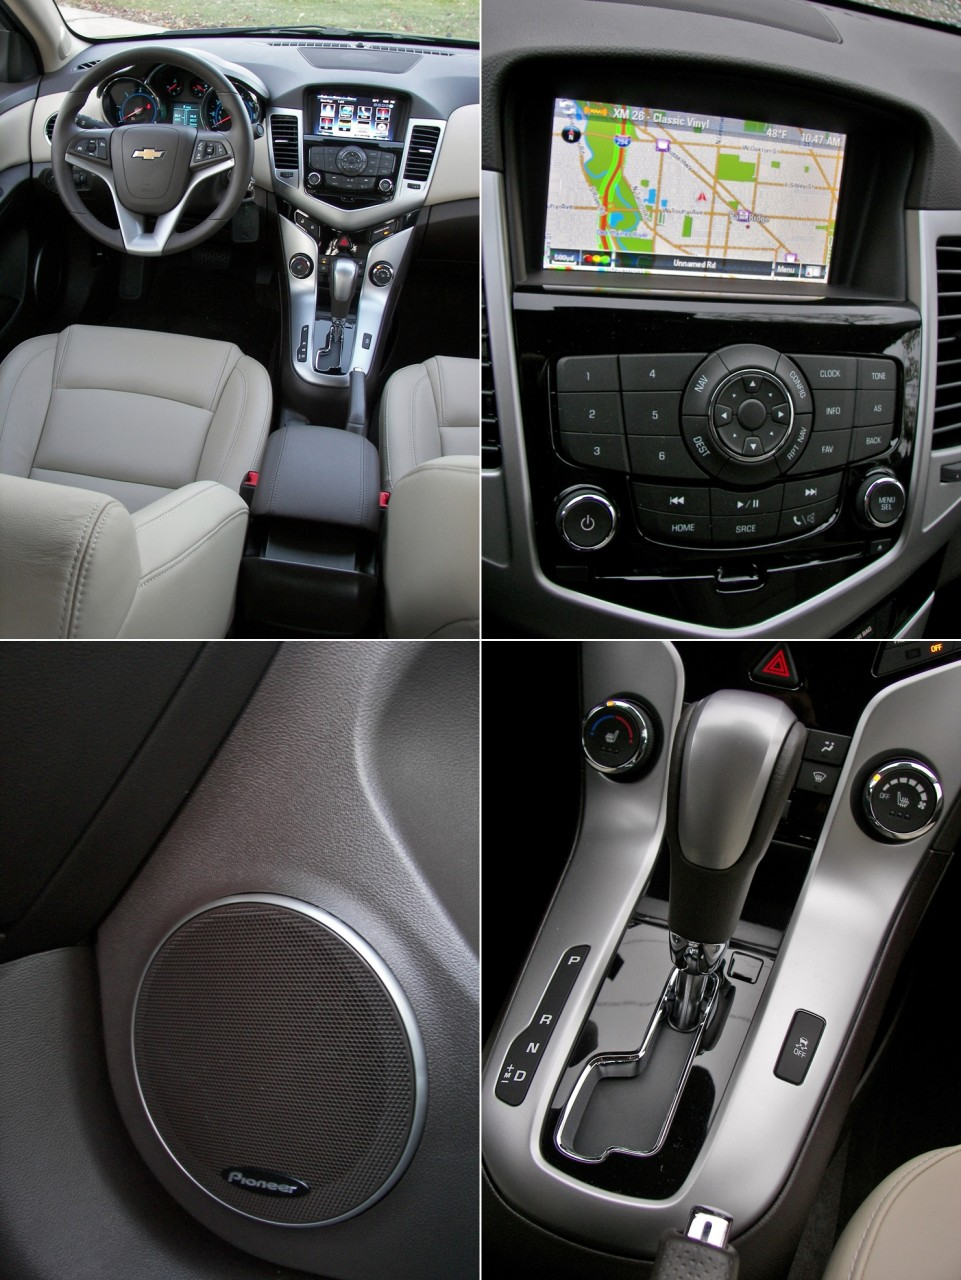 Charming 2014 Chevrolet Cruze Turbo Diesel   Serious Bladder Control   Review    Drive...He Said